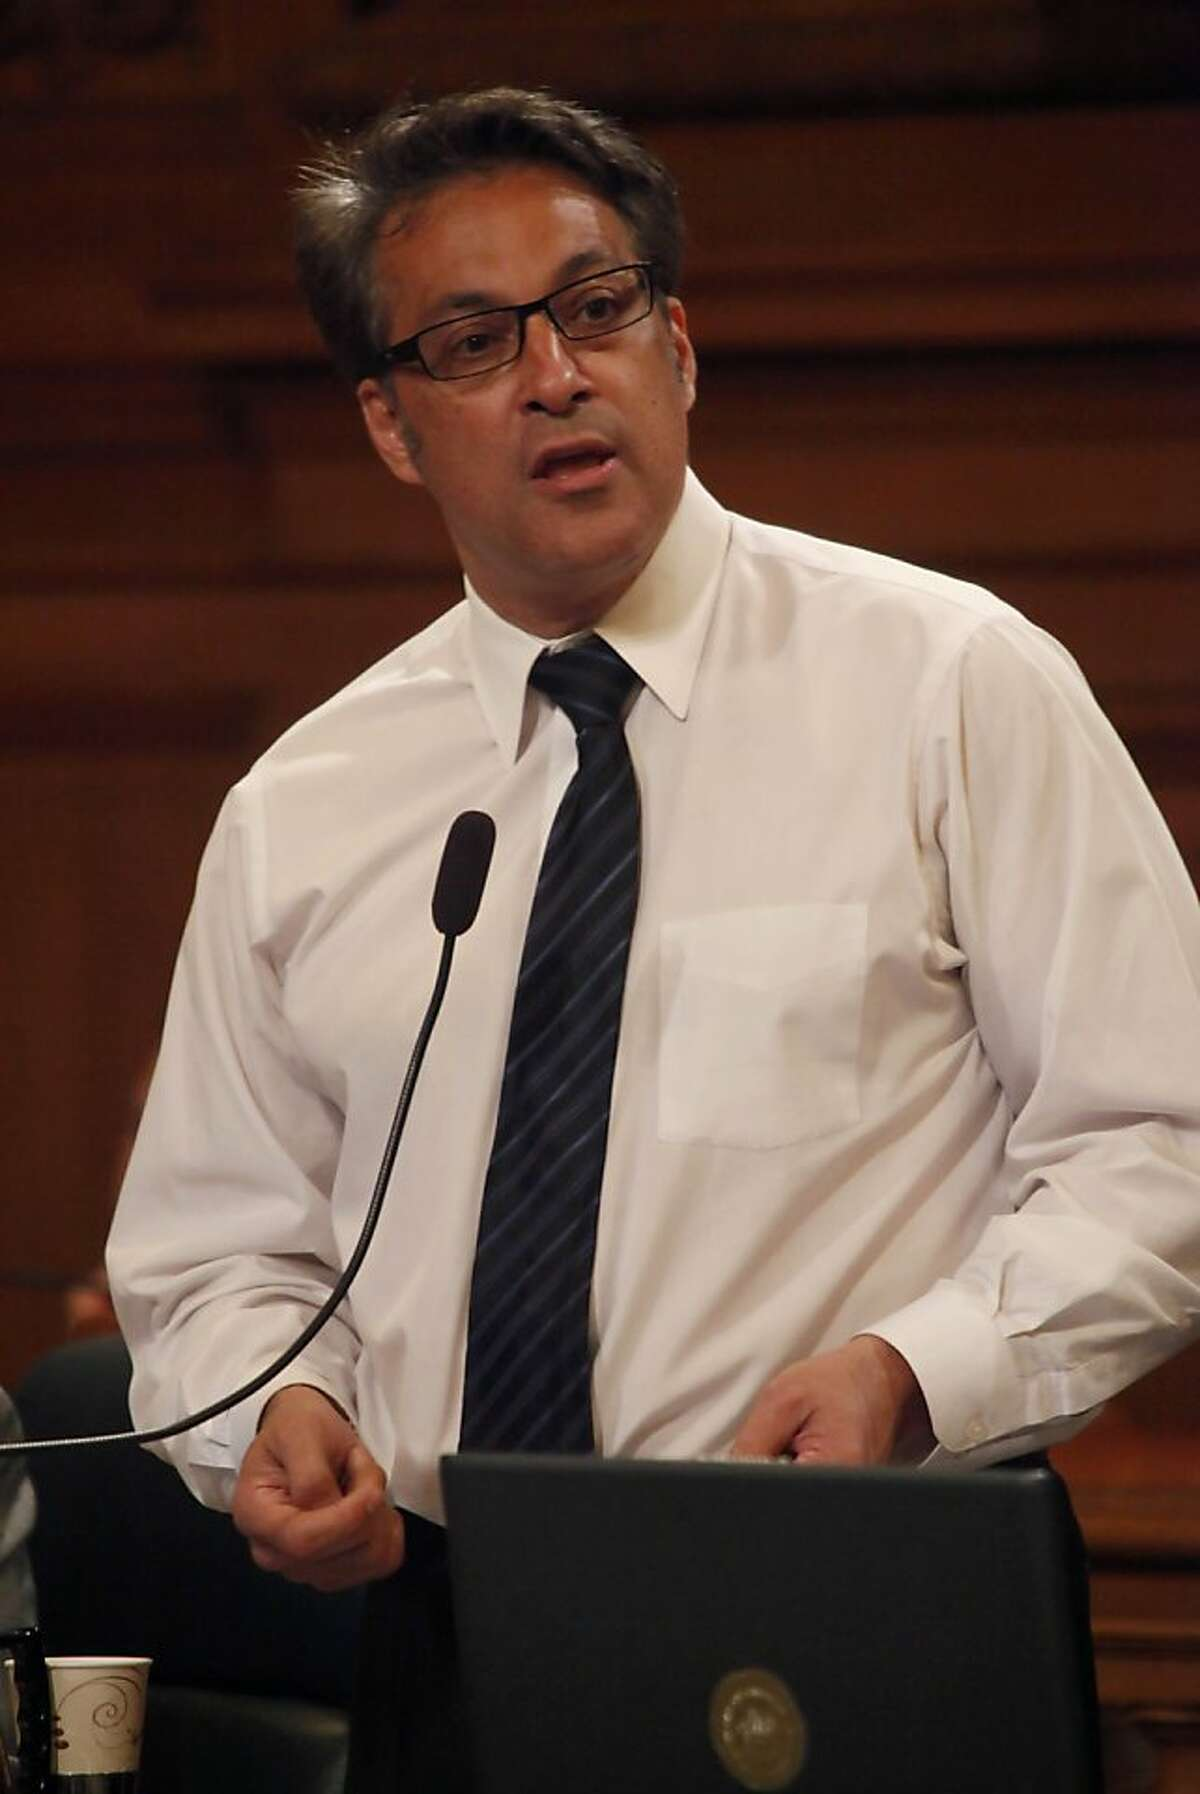 Supervisor Ross Mirkarimi speaks during the San Francisco Board of Supervisors meeting at City Hall in San Francisco, Calif. on Tuesday May 4, 2010. Ran on: 06-08-2010 Supervisor Ross Mirkarimi plans to introduce a resolution supporting the public power contract. Ran on: 08-03-2010 Supervisor Ross Mirkarimi plans to introduce legislation today to expand the bag ban. Ran on: 11-22-2010 Photo caption Dummy text goes here. Dummy text goes here. Dummy text goes here. Dummy text goes here. Dummy text goes here. Dummy text goes here. Dummy text goes here. Dummy text goes here.###Photo: Drugs22_ph11272758400SFC###Live Caption:Supervisor Ross Mirkarimi speaks during the San Francisco Board of Supervisors meeting at City Hall in San Francisco, Calif. on Tuesday May 4, 2010.###Caption History:Supervisor Ross Mirkarimi speaks during the San Francisco Board of Supervisors meeting at City Hall in San Francisco, Calif. on Tuesday May 4, 2010. ____Ran on: 06-08-2010__Supervisor Ross Mirkarimi plans to introduce a resolution supporting the public power contract.____Ran on: 08-03-2010__Supervisor Ross Mirkarimi plans to introduce legislation today to expand the bag ban.###Notes:###Special Instructions:**MANDATORY CREDIT FOR PHOTOG AND SF CHRONICLE-NO SALES-MAGS OUT-TV OUT-INTERNET: AP MEMBER NEWSPAPERS ONLY** Ran on: 11-22-2010 Photo caption Dummy text goes here. Dummy text goes here. Dummy text goes here. Dummy text goes here. Dummy text goes here. Dummy text goes here. Dummy text goes here. Dummy text goes here.###Photo: Drugs22_ph11272758400SFC###Live Caption:Supervisor Ross Mirkarimi speaks during the San...